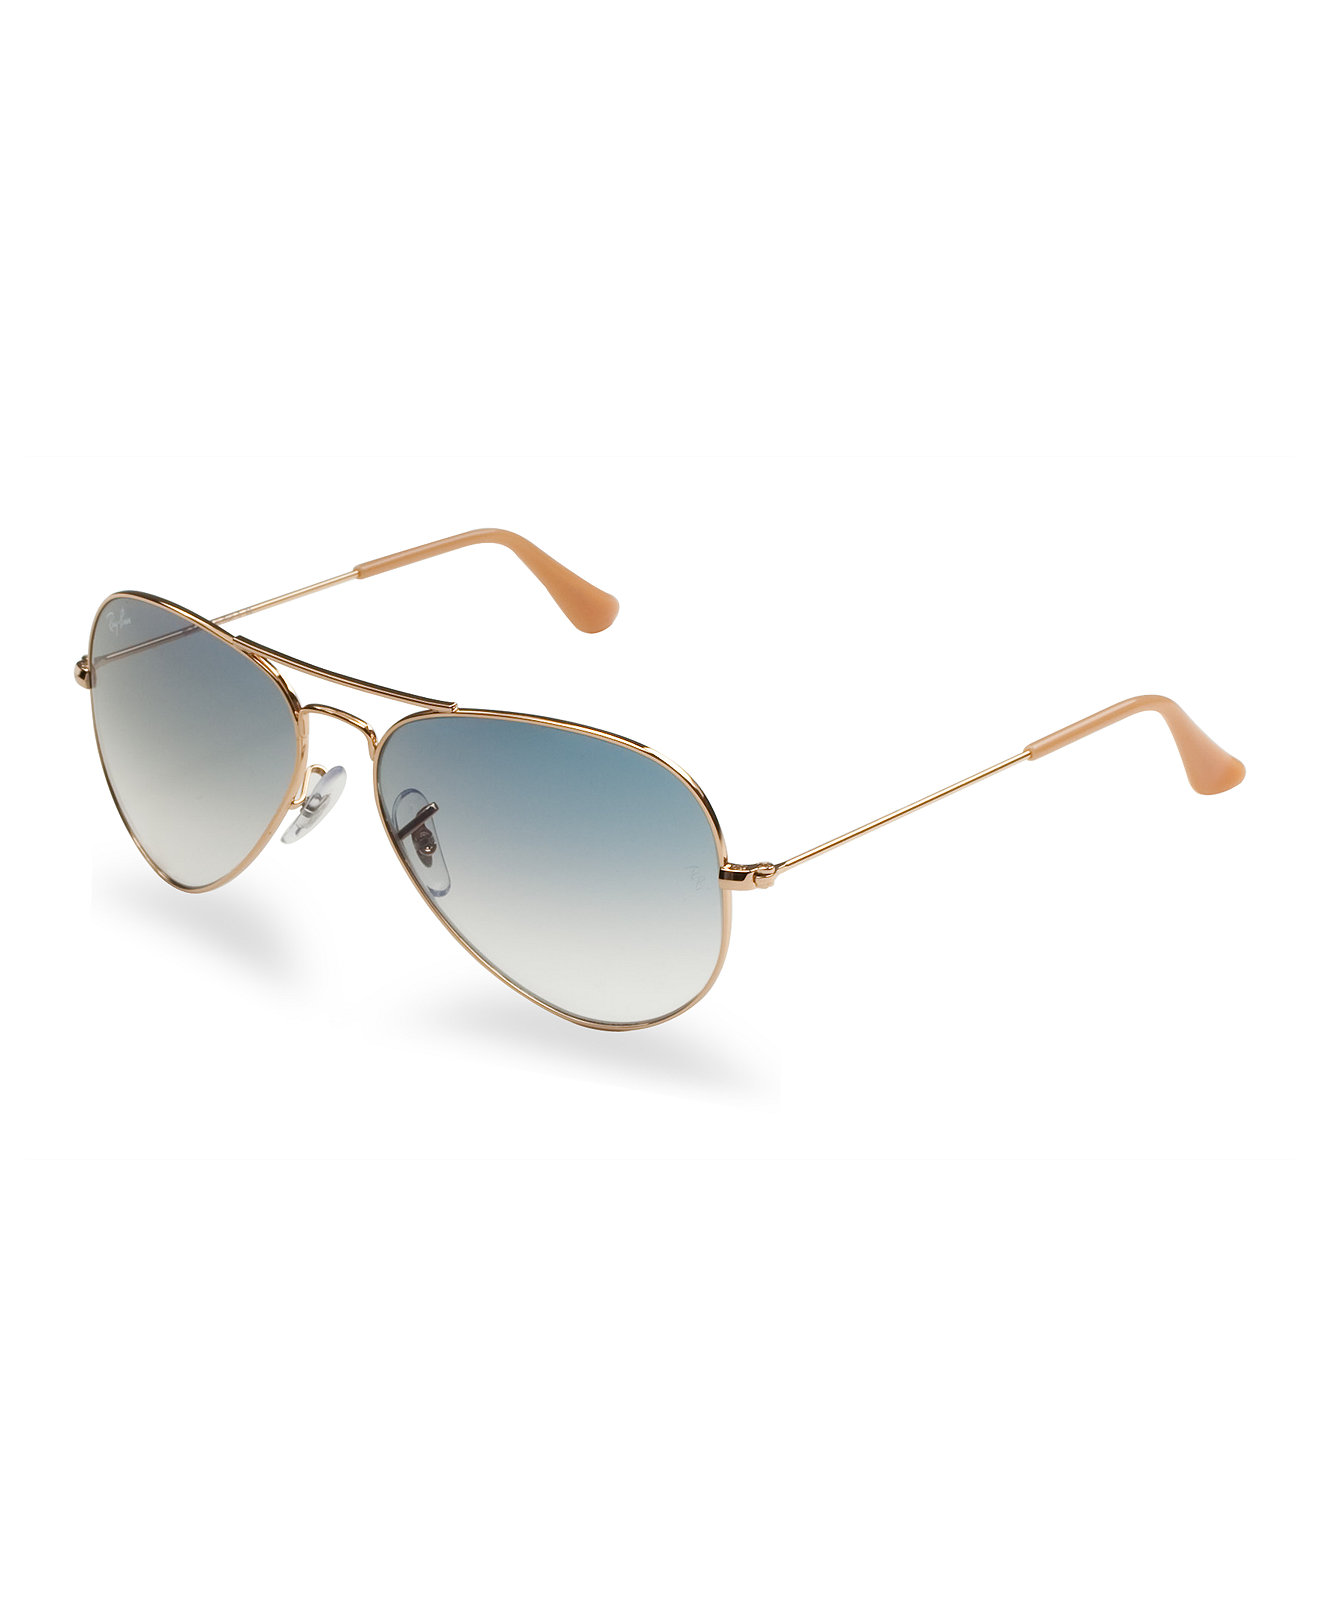 Shop Featured Ray Ban Sunglasses Ray Bans 75 Off